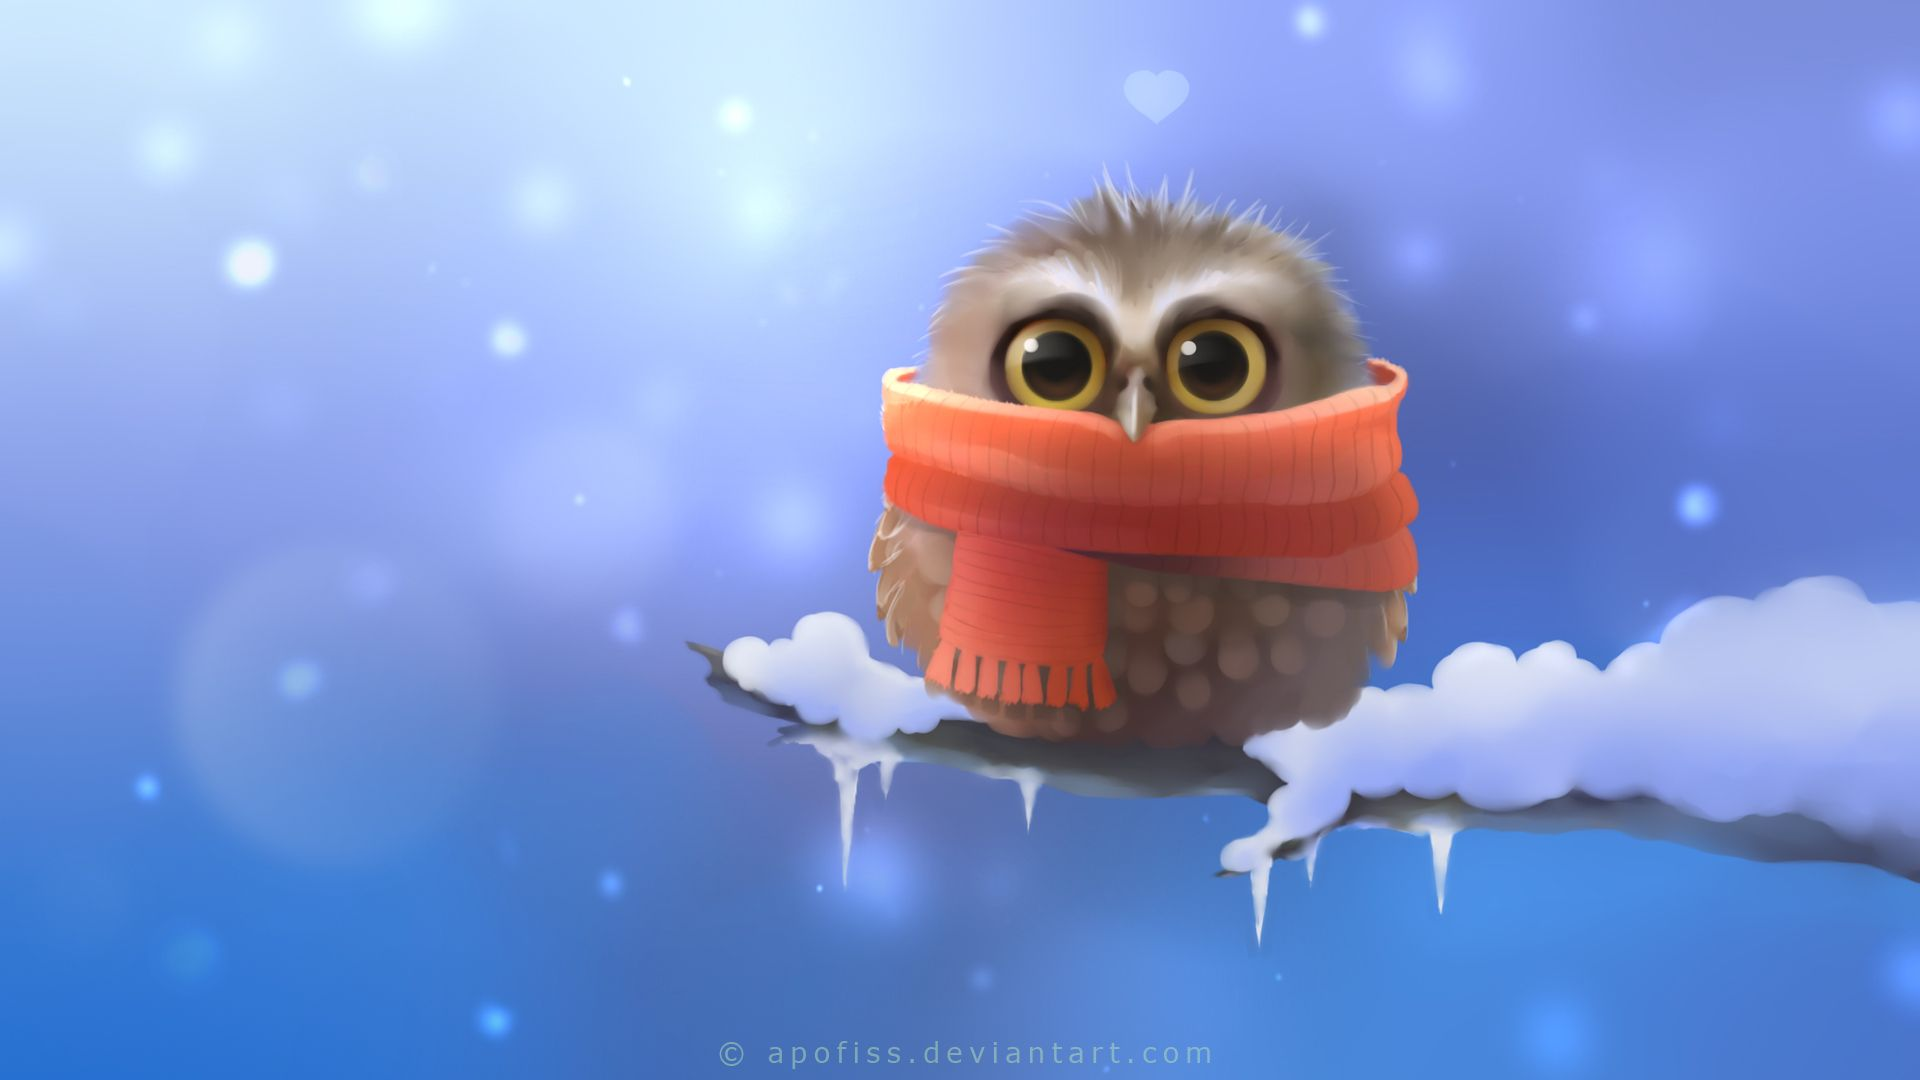 15 Cute Hd Wallpapers Style Arena Cute Owls Wallpaper Owl Wallpaper Winter Owl